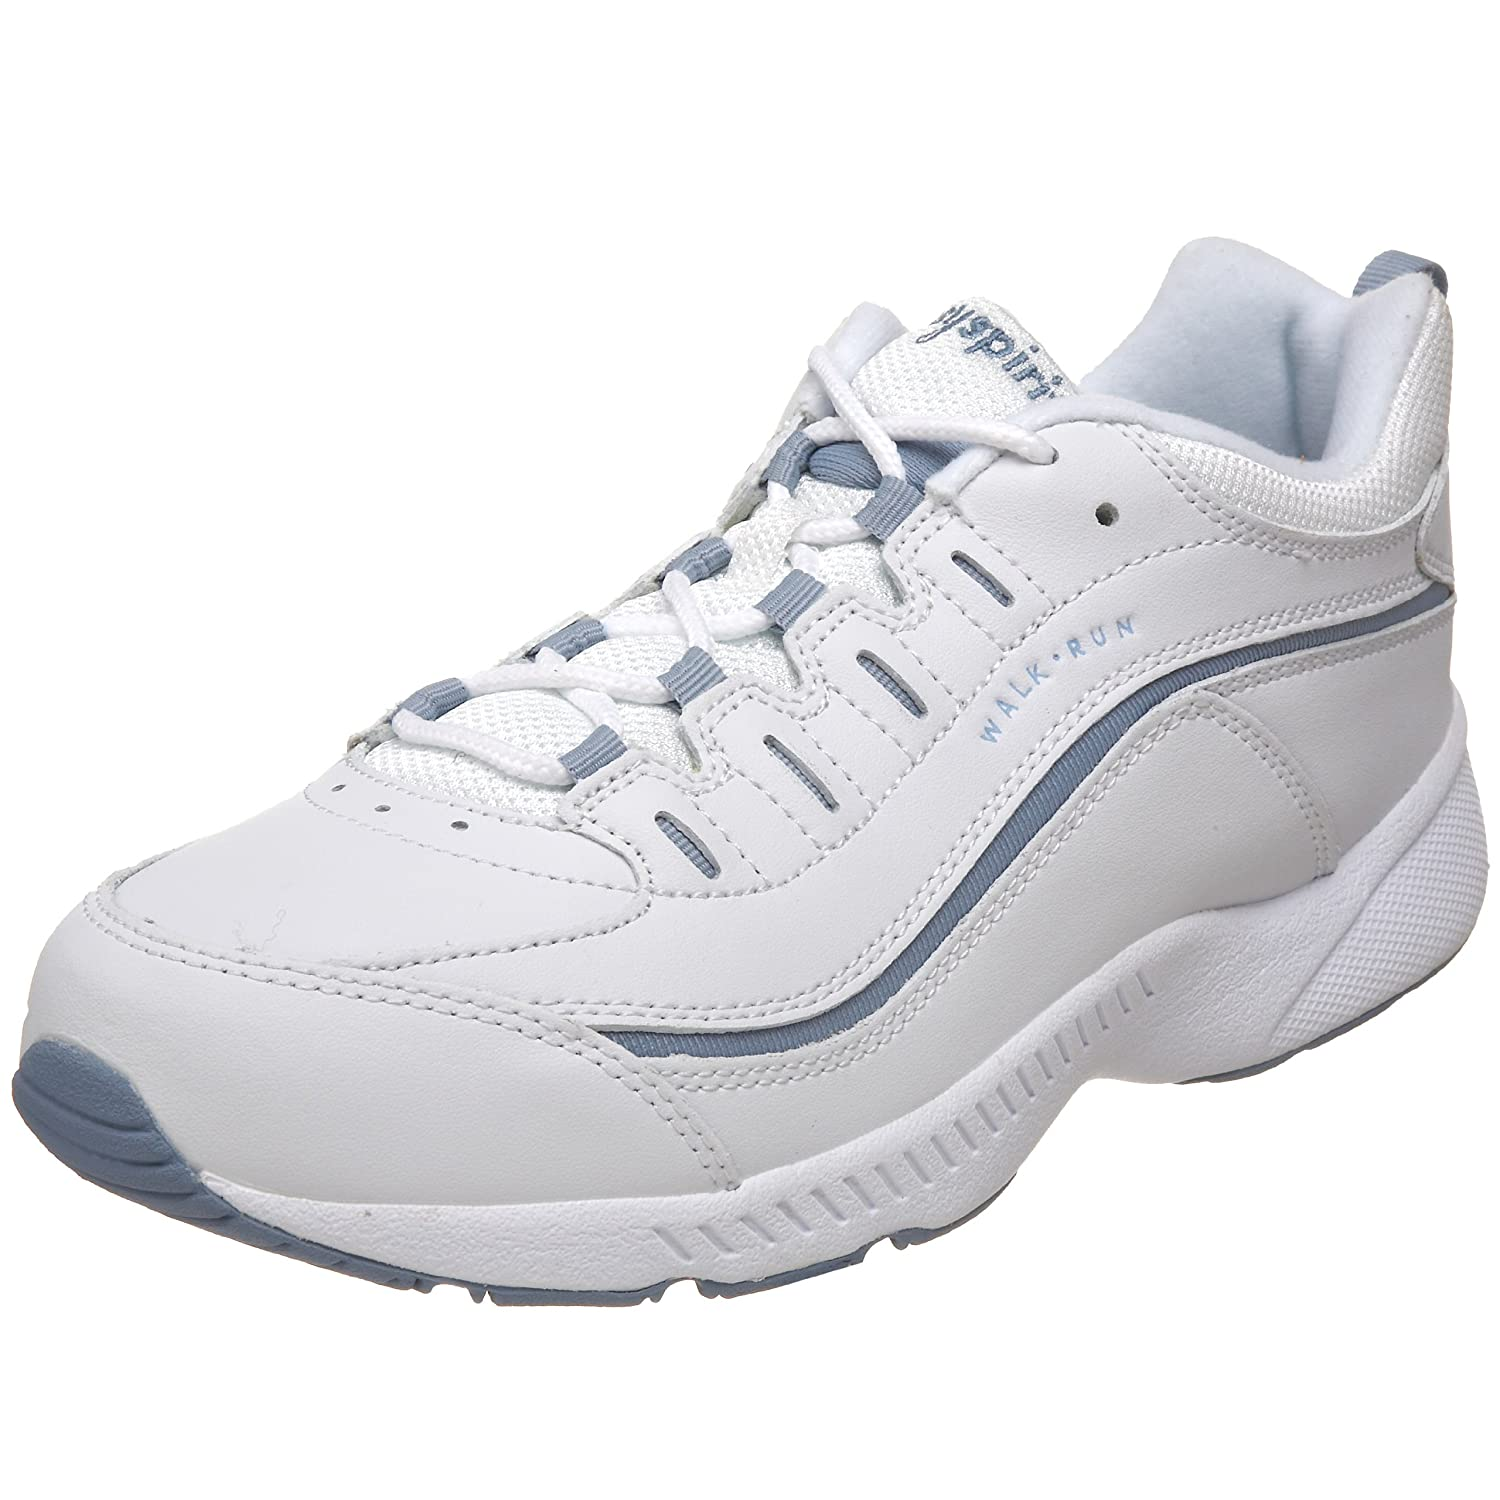 Easy Spirit Women's US|White Romy Sneaker B0038JP1YA 7 E US|White Women's Light Blue d017ae